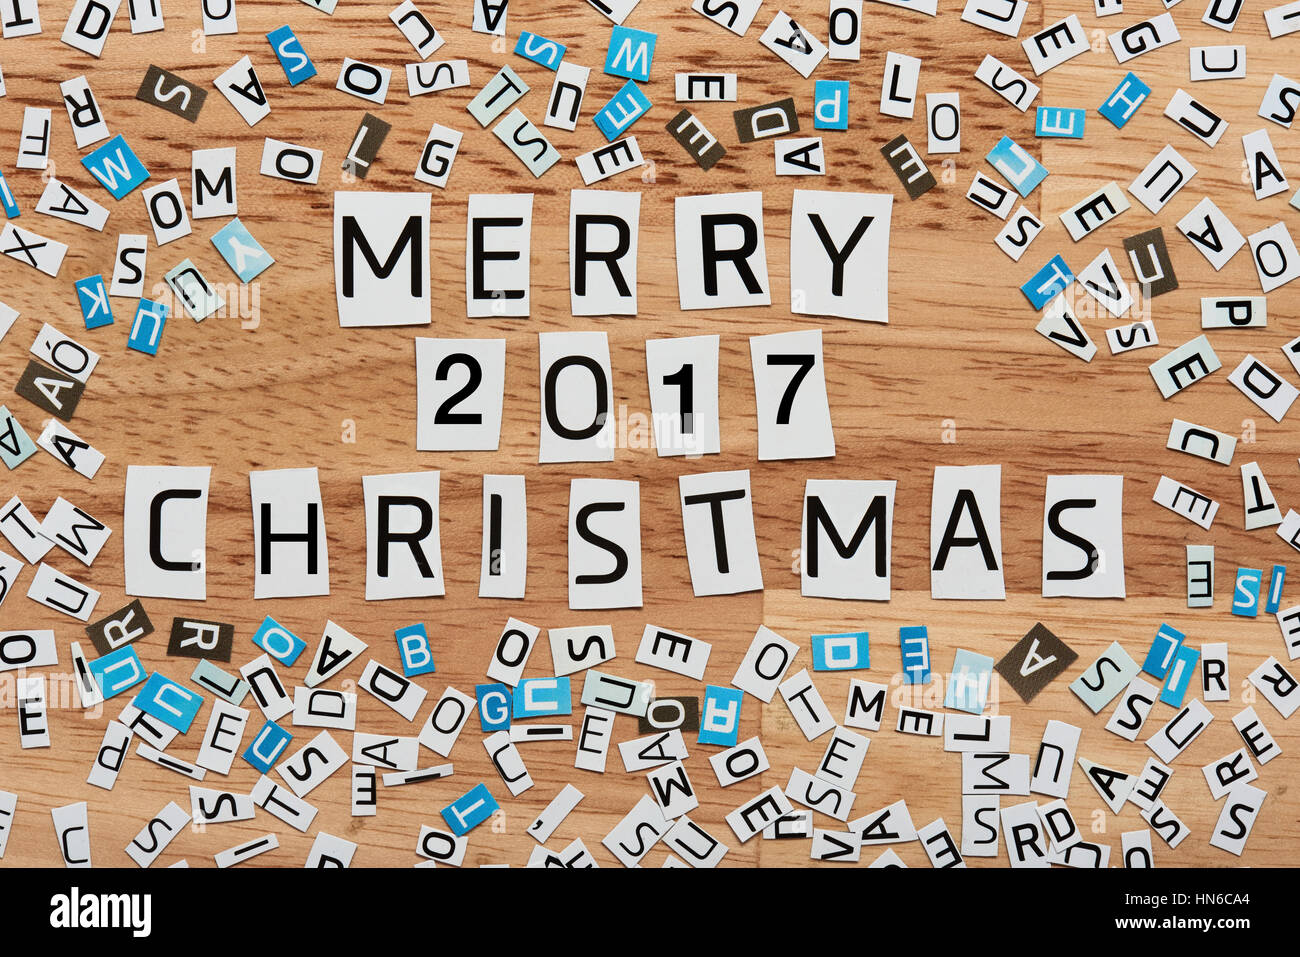 Merry 2017 christmas words cut out from magazine stock photo merry 2017 christmas words cut out from magazine publicscrutiny Choice Image